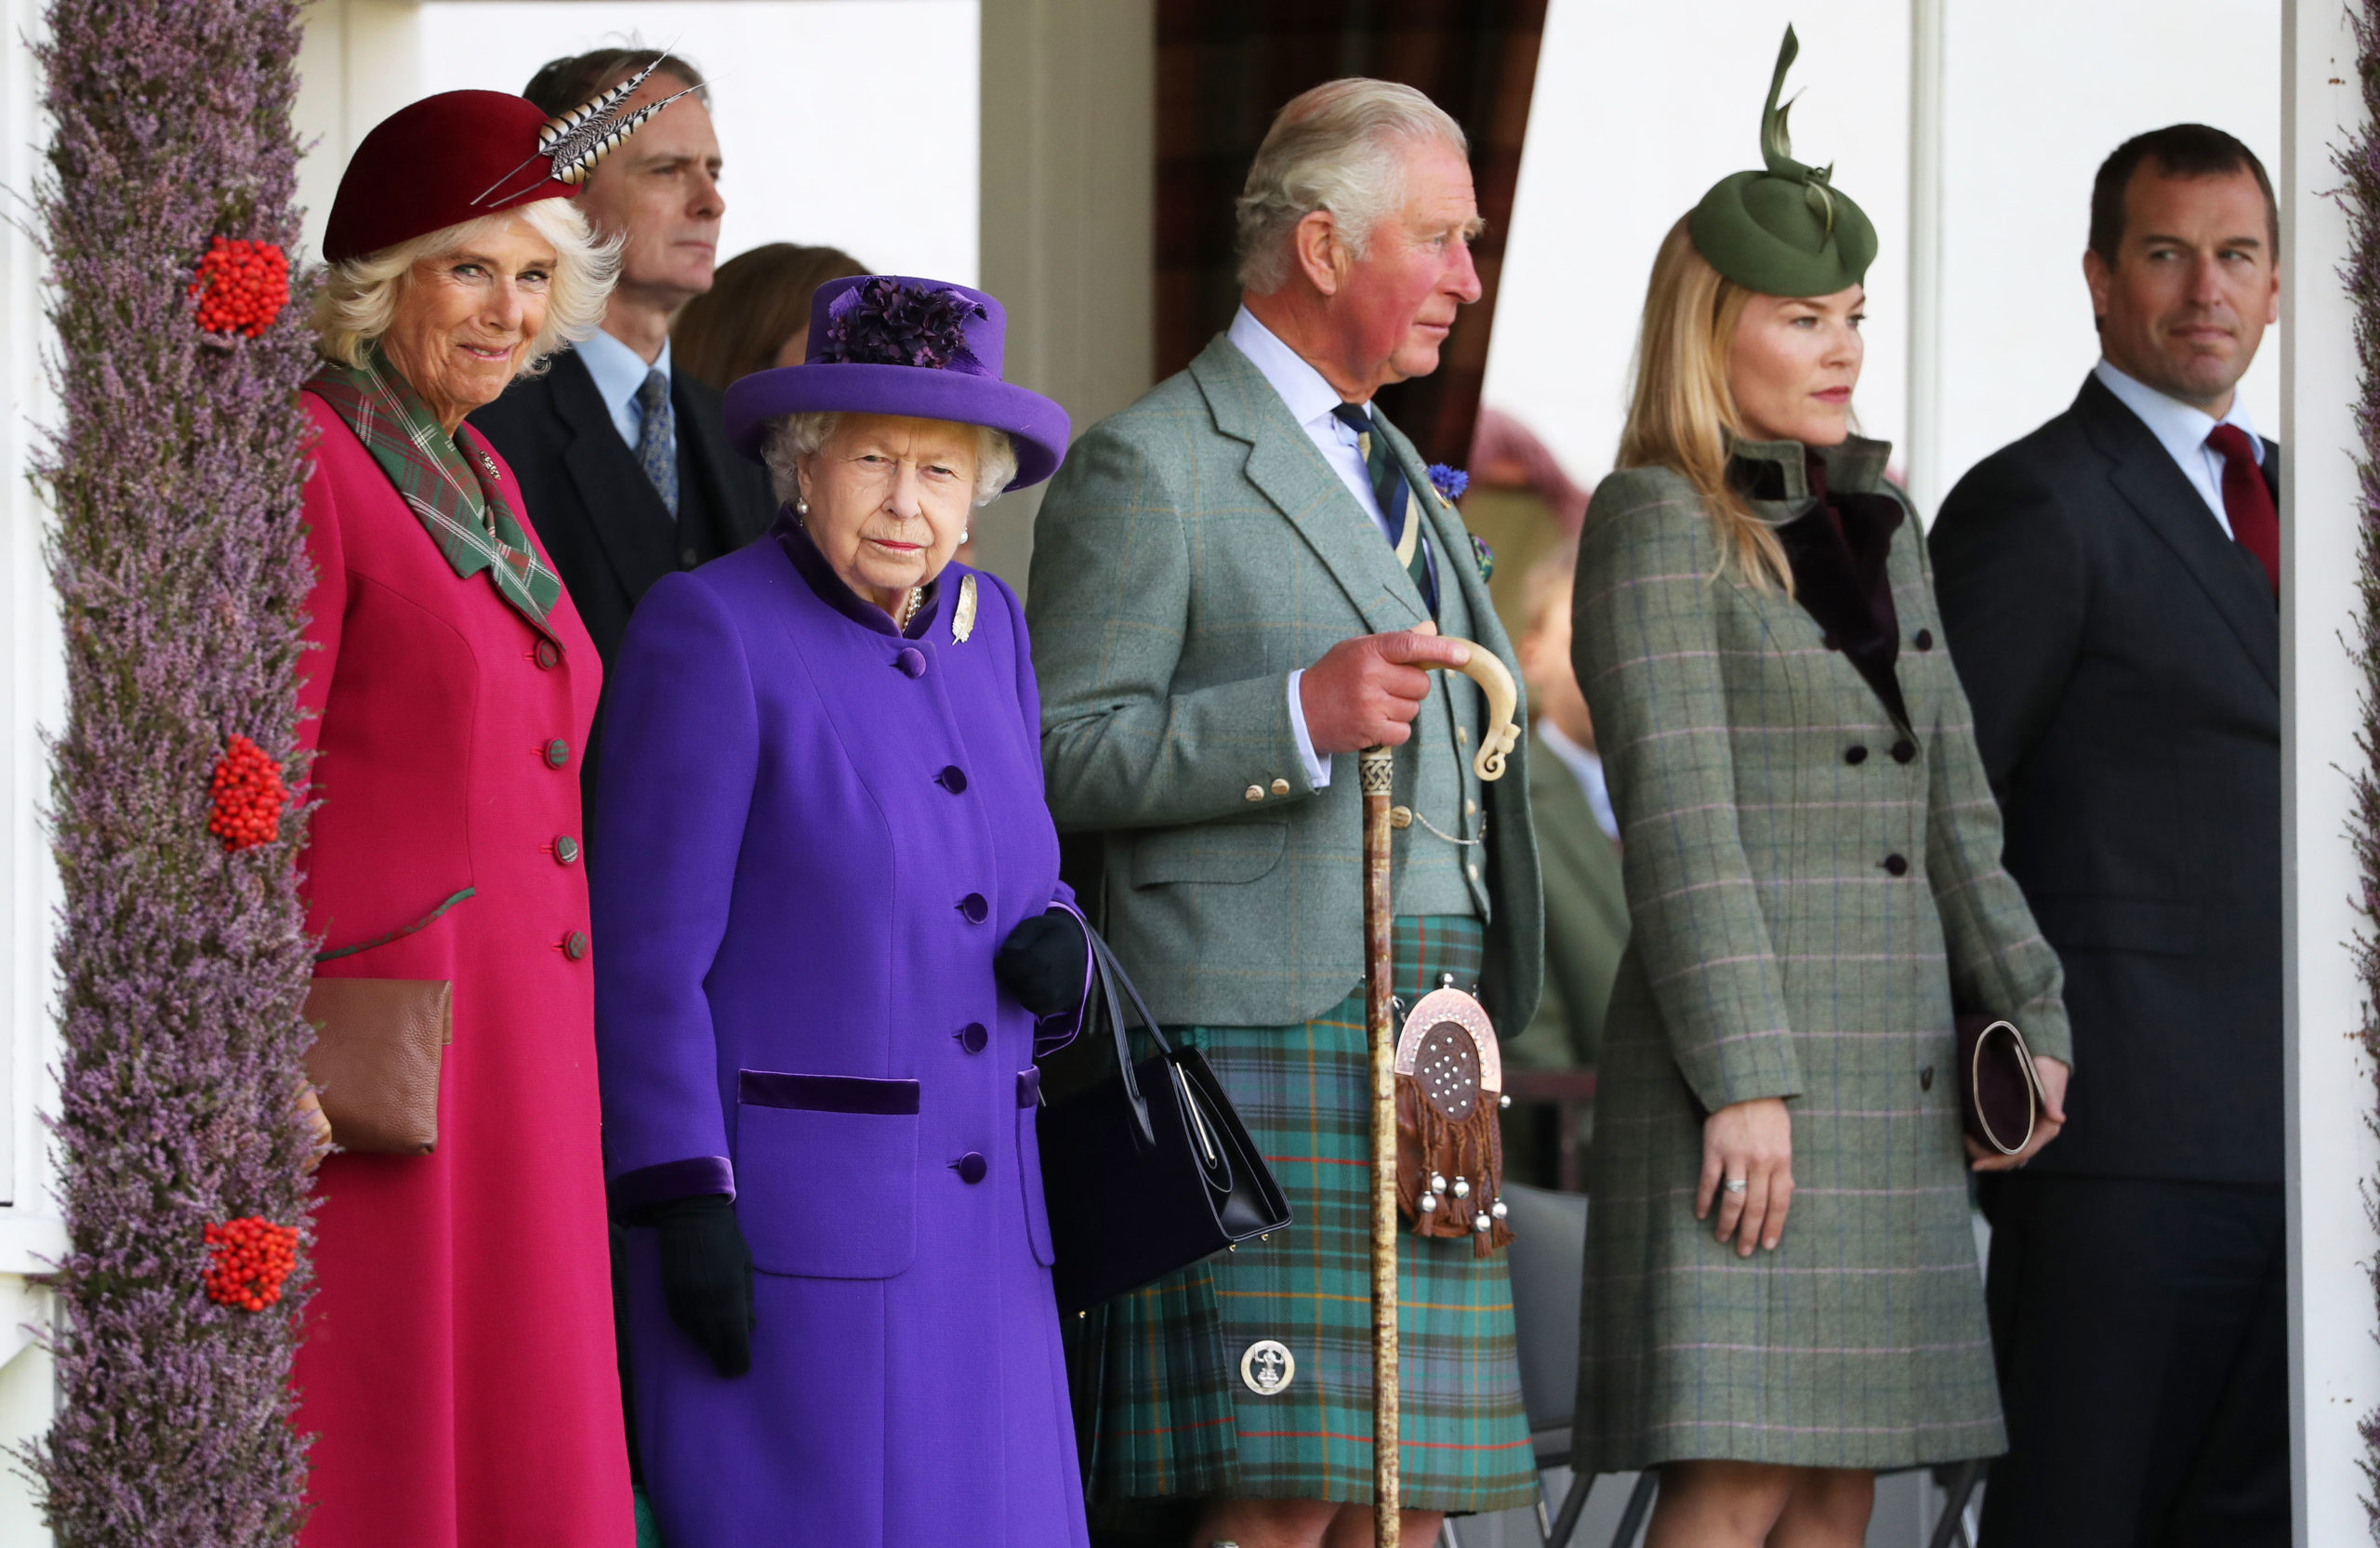 Queen Elizabeth II, the Prince of Wales and the Duchess of Cornwall during the Braemar Royal Highland Gathering at the Princess Royal and Duke of Fife Memorial Park, Braemar